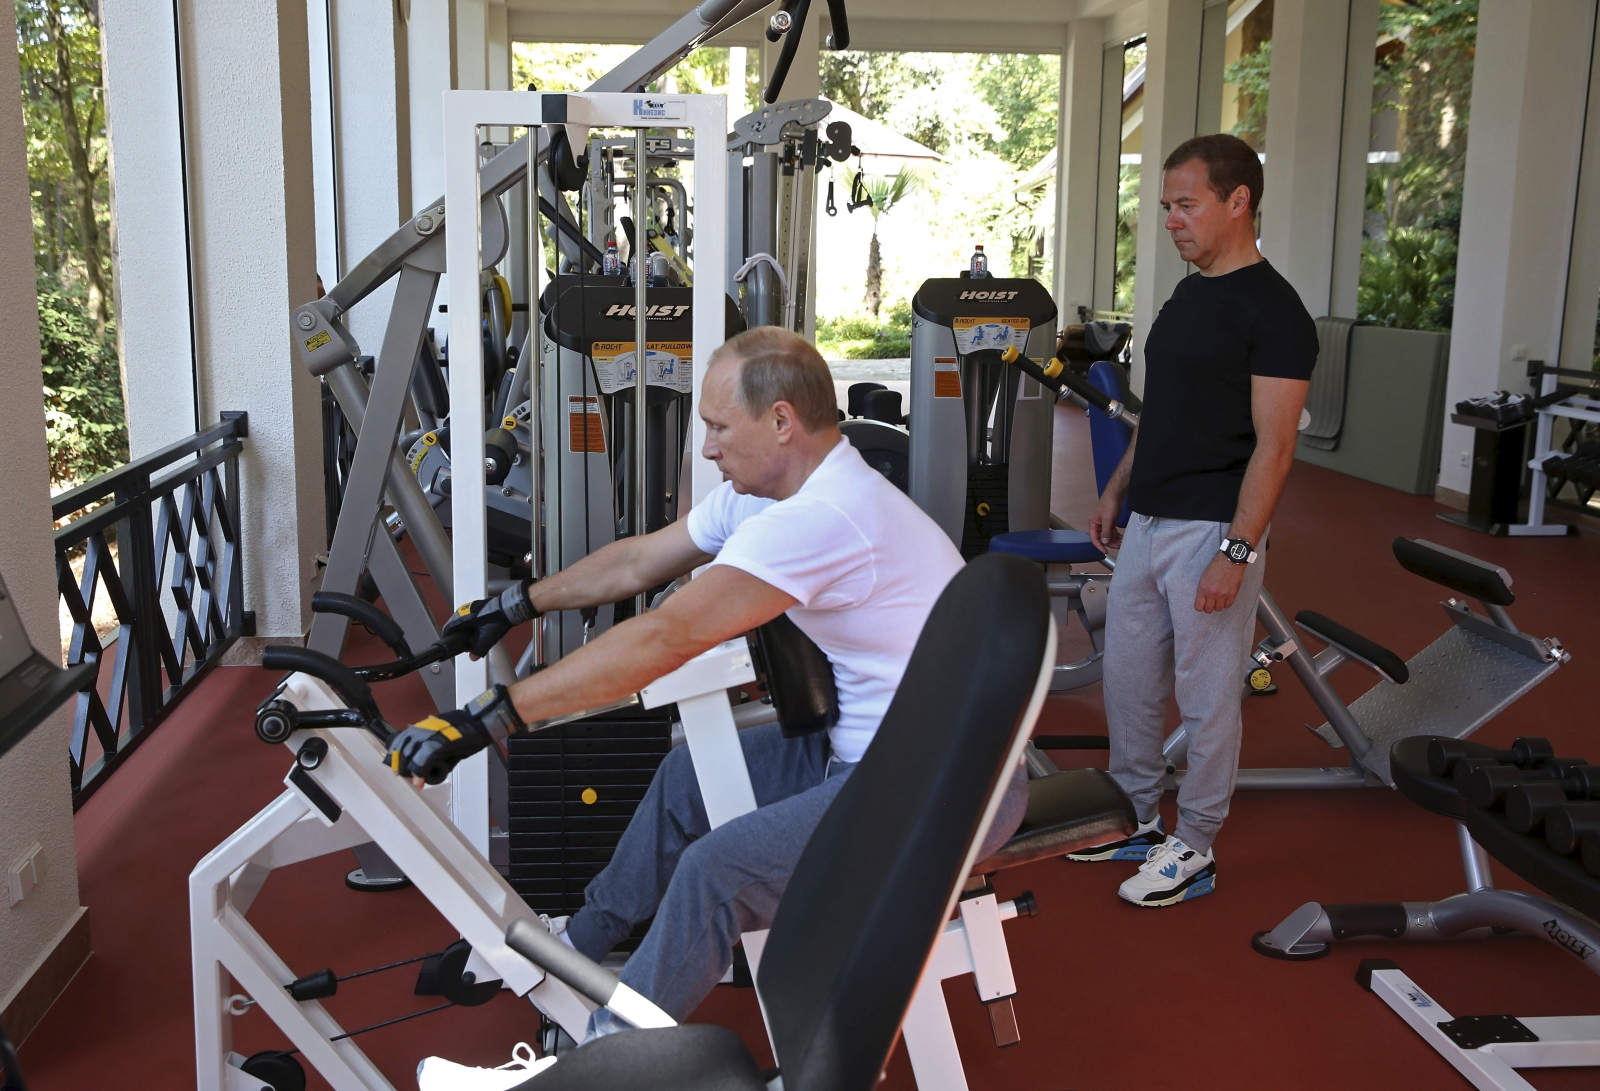 Putin and Medvedev in gym